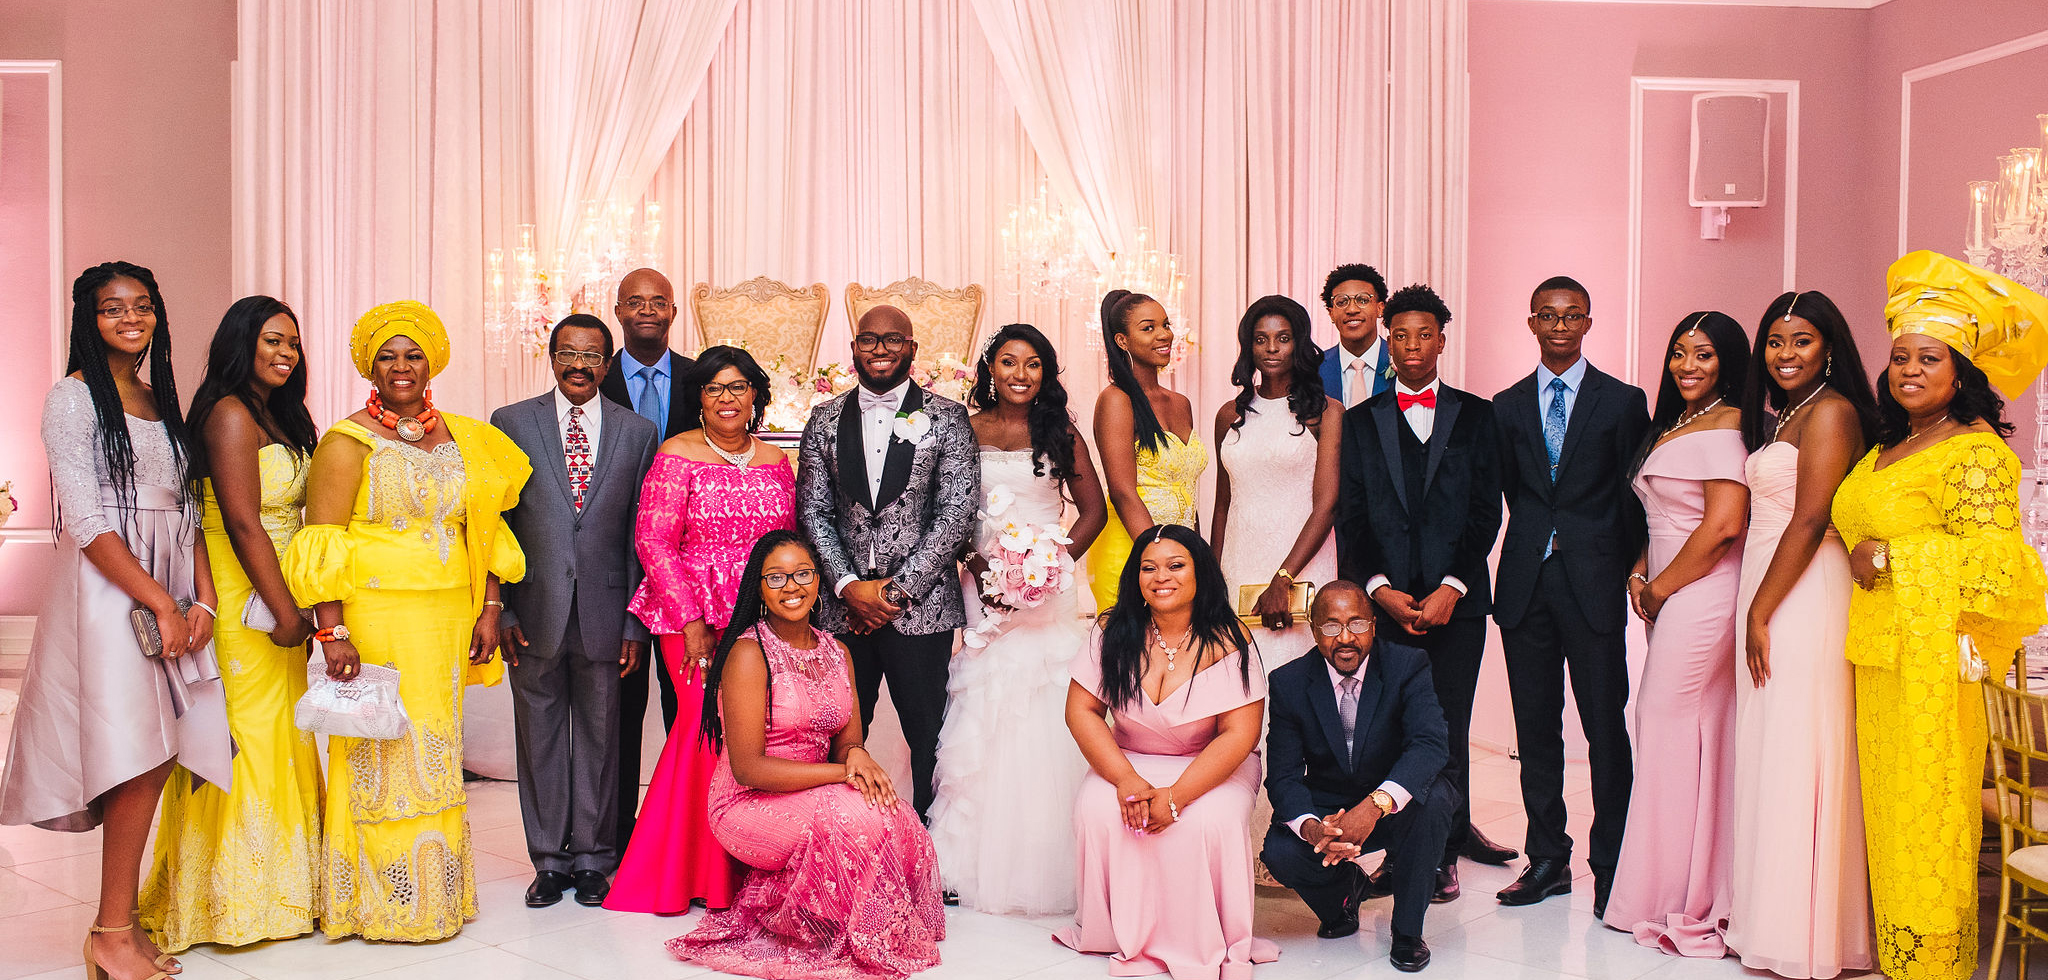 405a2dae12 The Grandeur and Vibrancy of a Nigerian Wedding